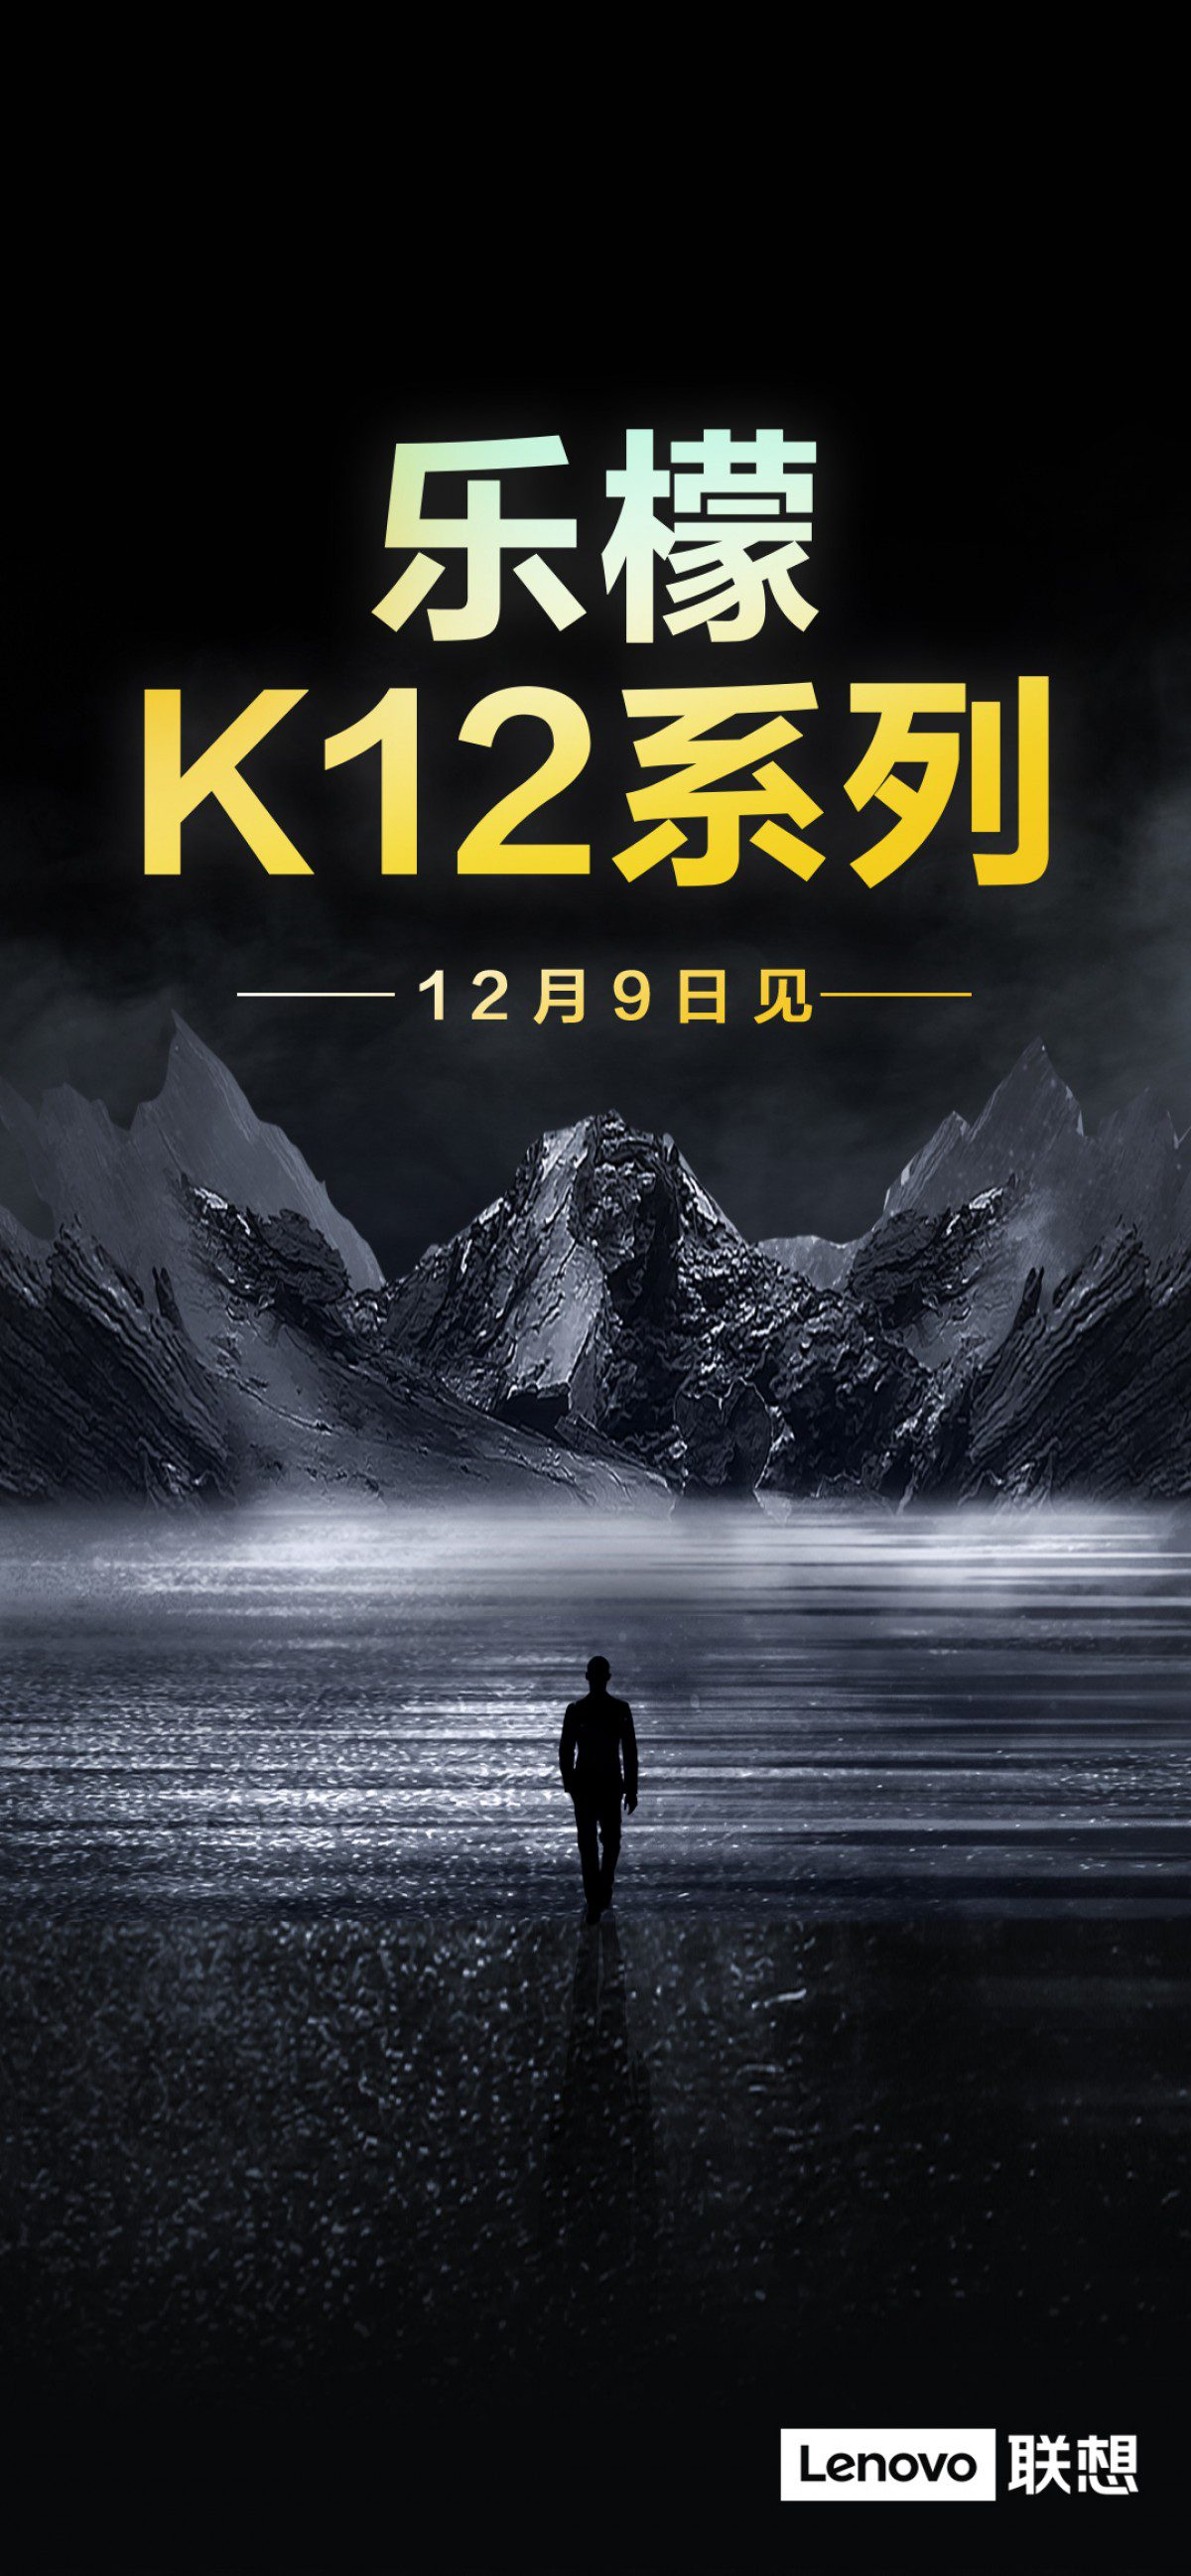 Lenovo officially teases the Lemon K12 series, which will be announced on December 9th